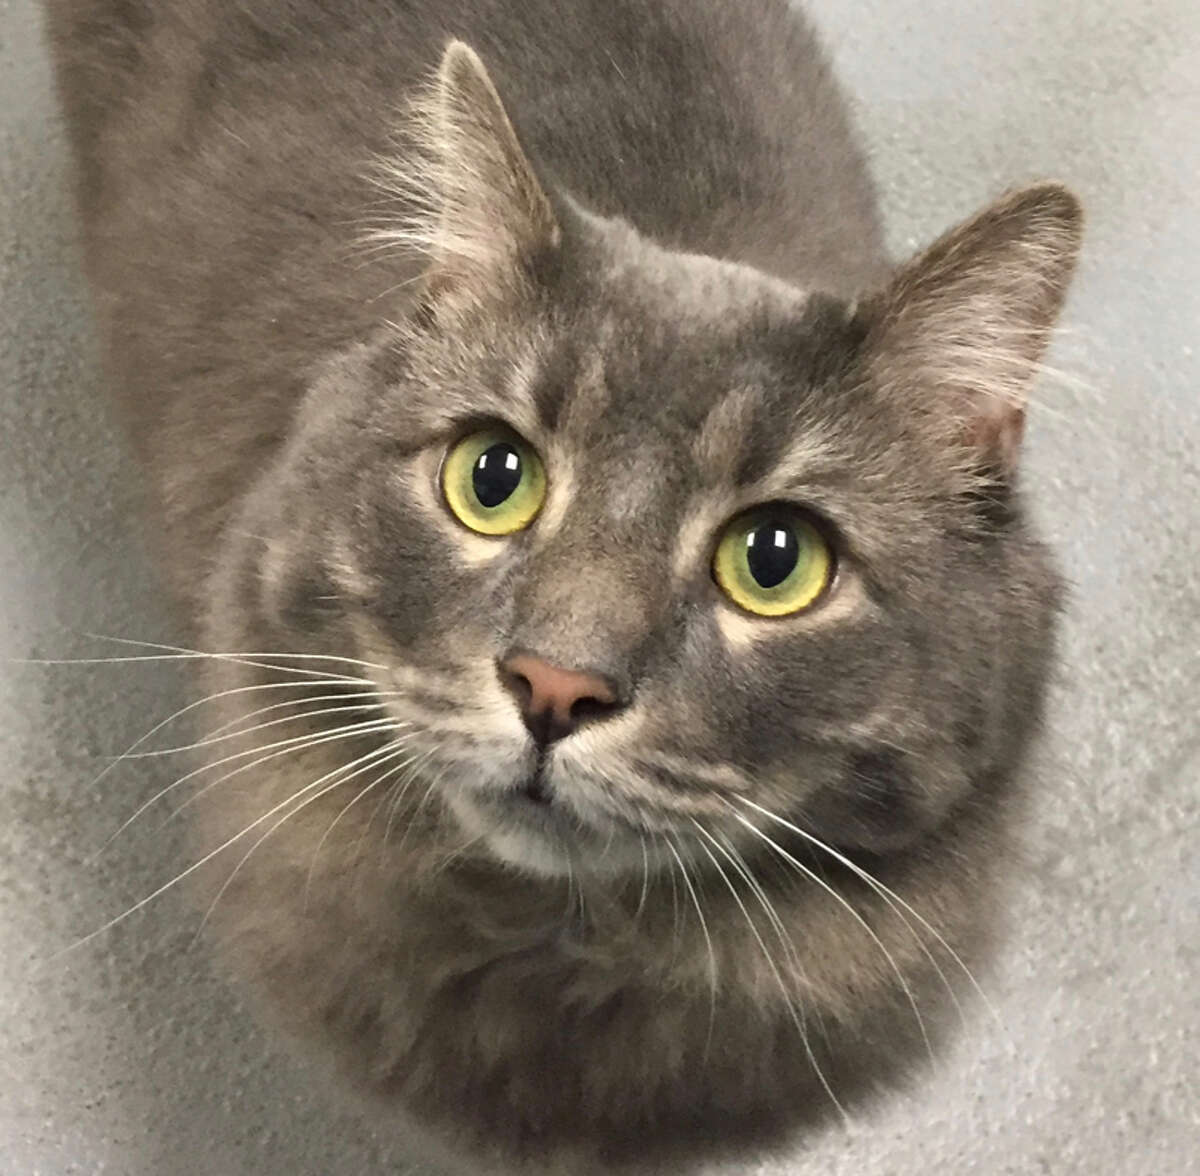 Grayson Breed: Domestic Longhair   Age: 5 Shelter: PAWS (Pet Animal Welfare Society), Norwalk